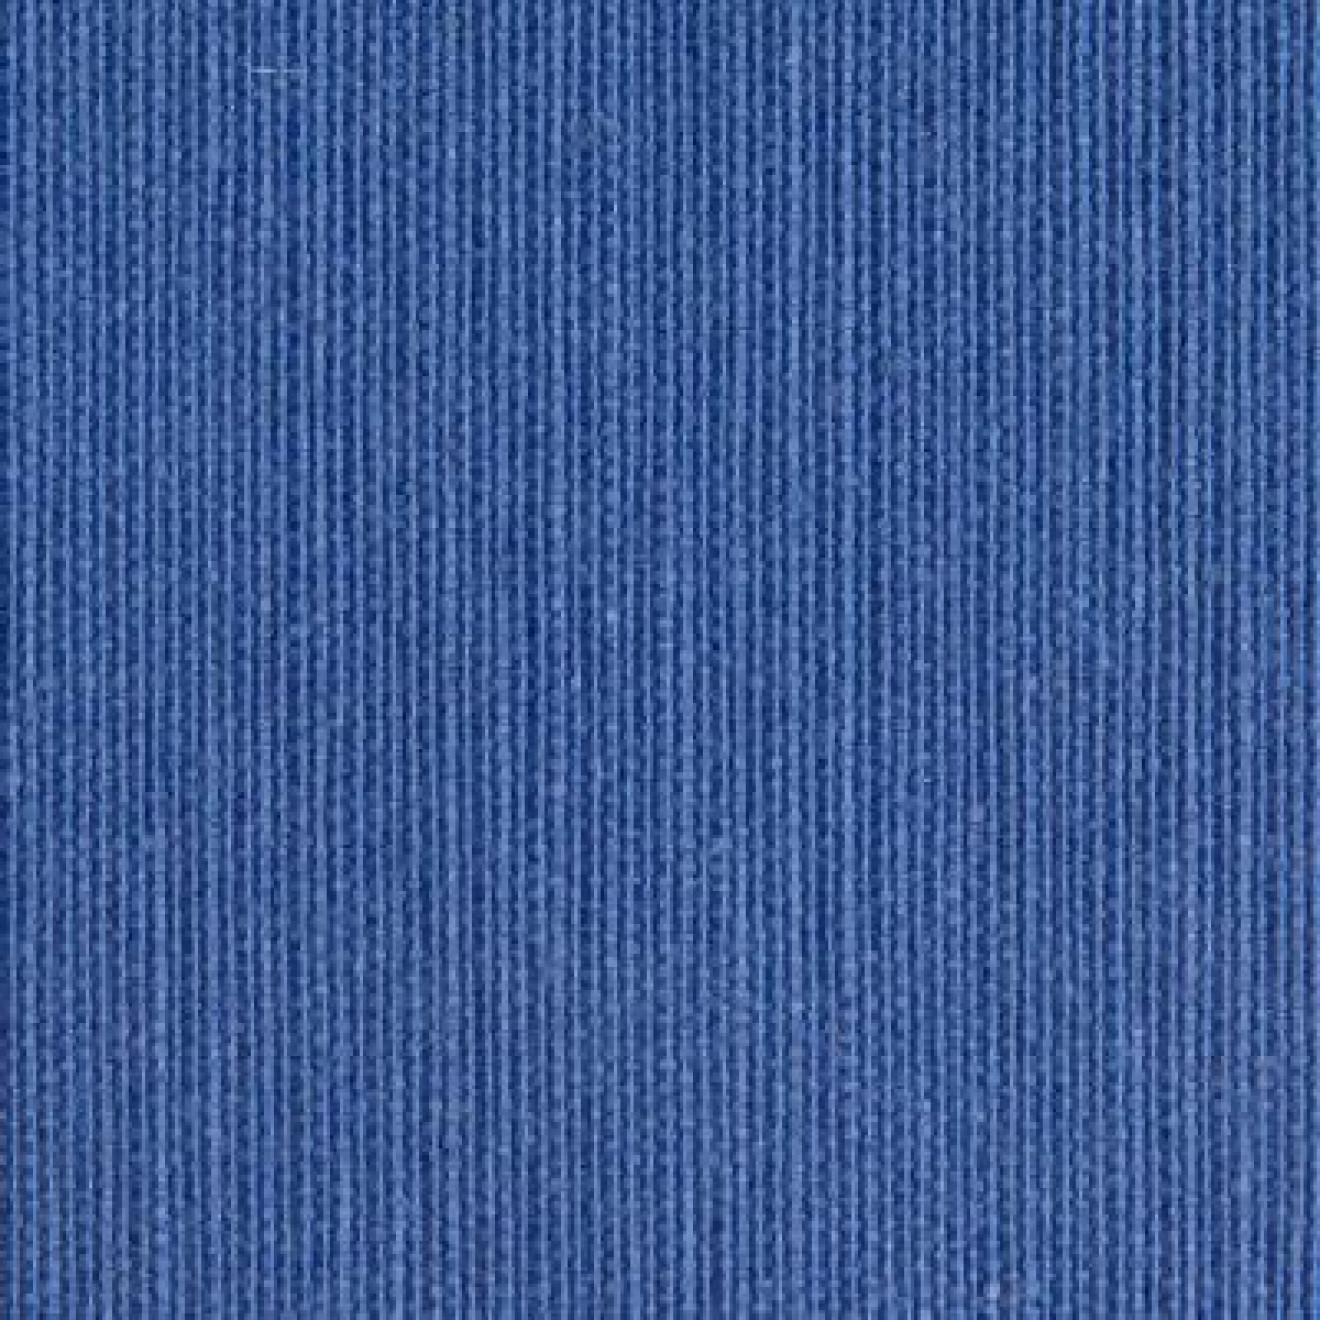 Dreieck - Acrylstoff Loneta Color 124